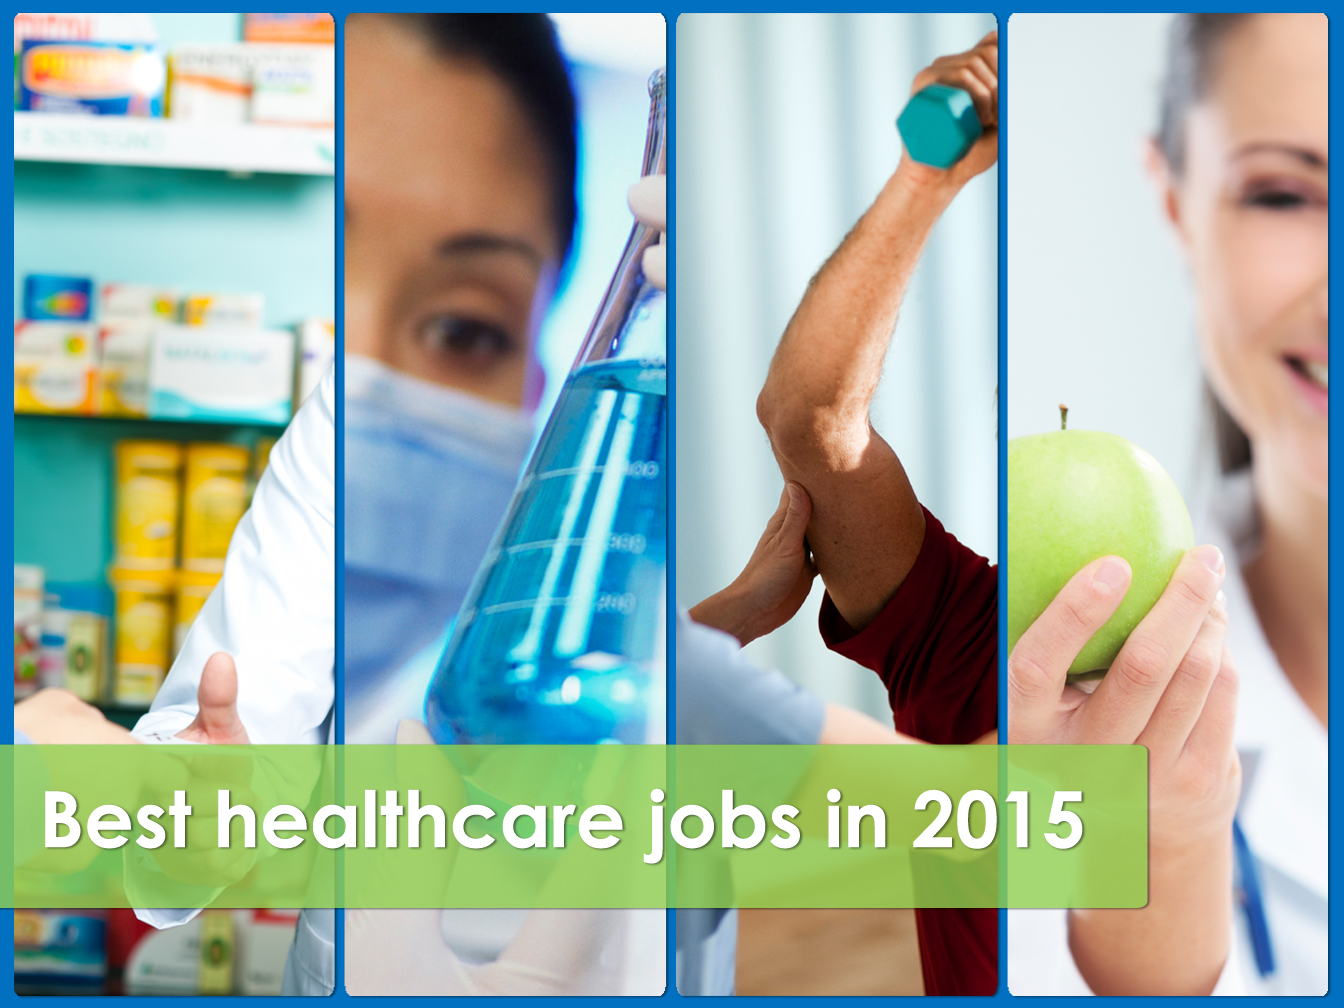 Numerous allied health roles rank among medical jobs most in demand